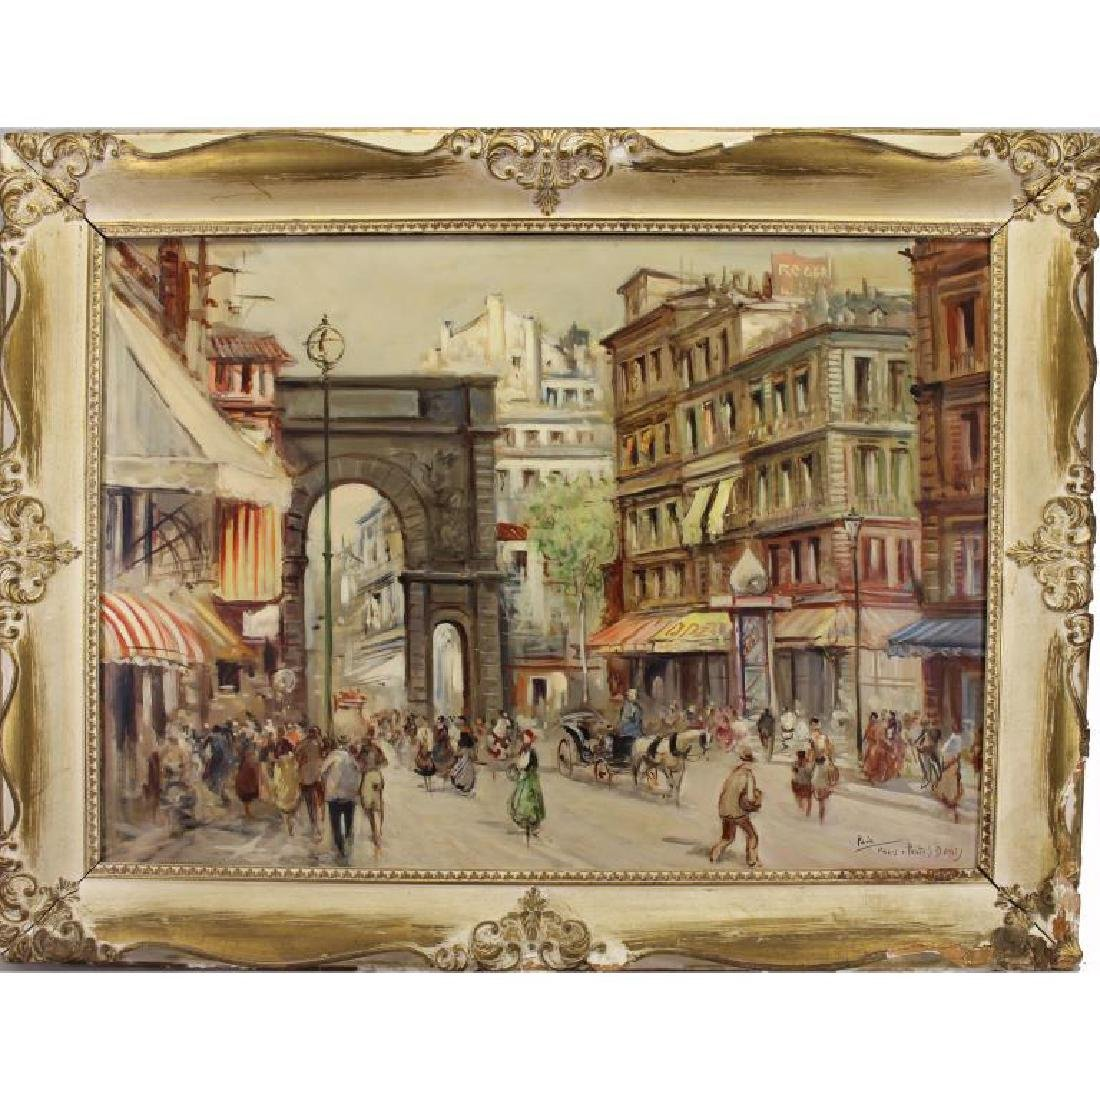 Early 20th C. Paris Street Scene with Figures